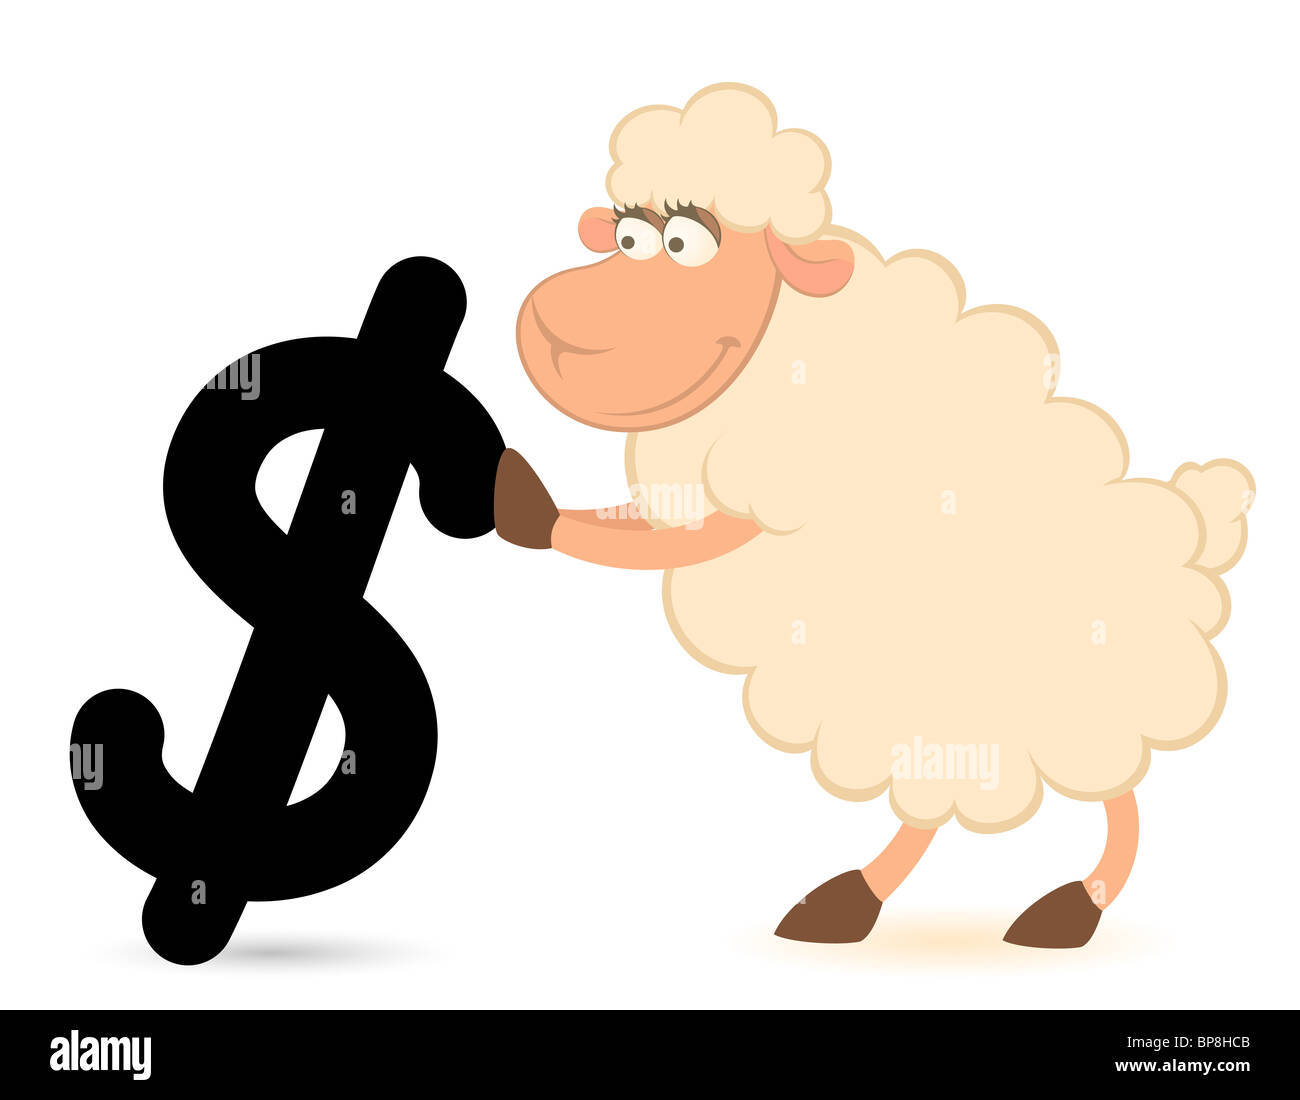 Cartoon mouton avec le signe de dollar sur un fond blanc Photo Stock